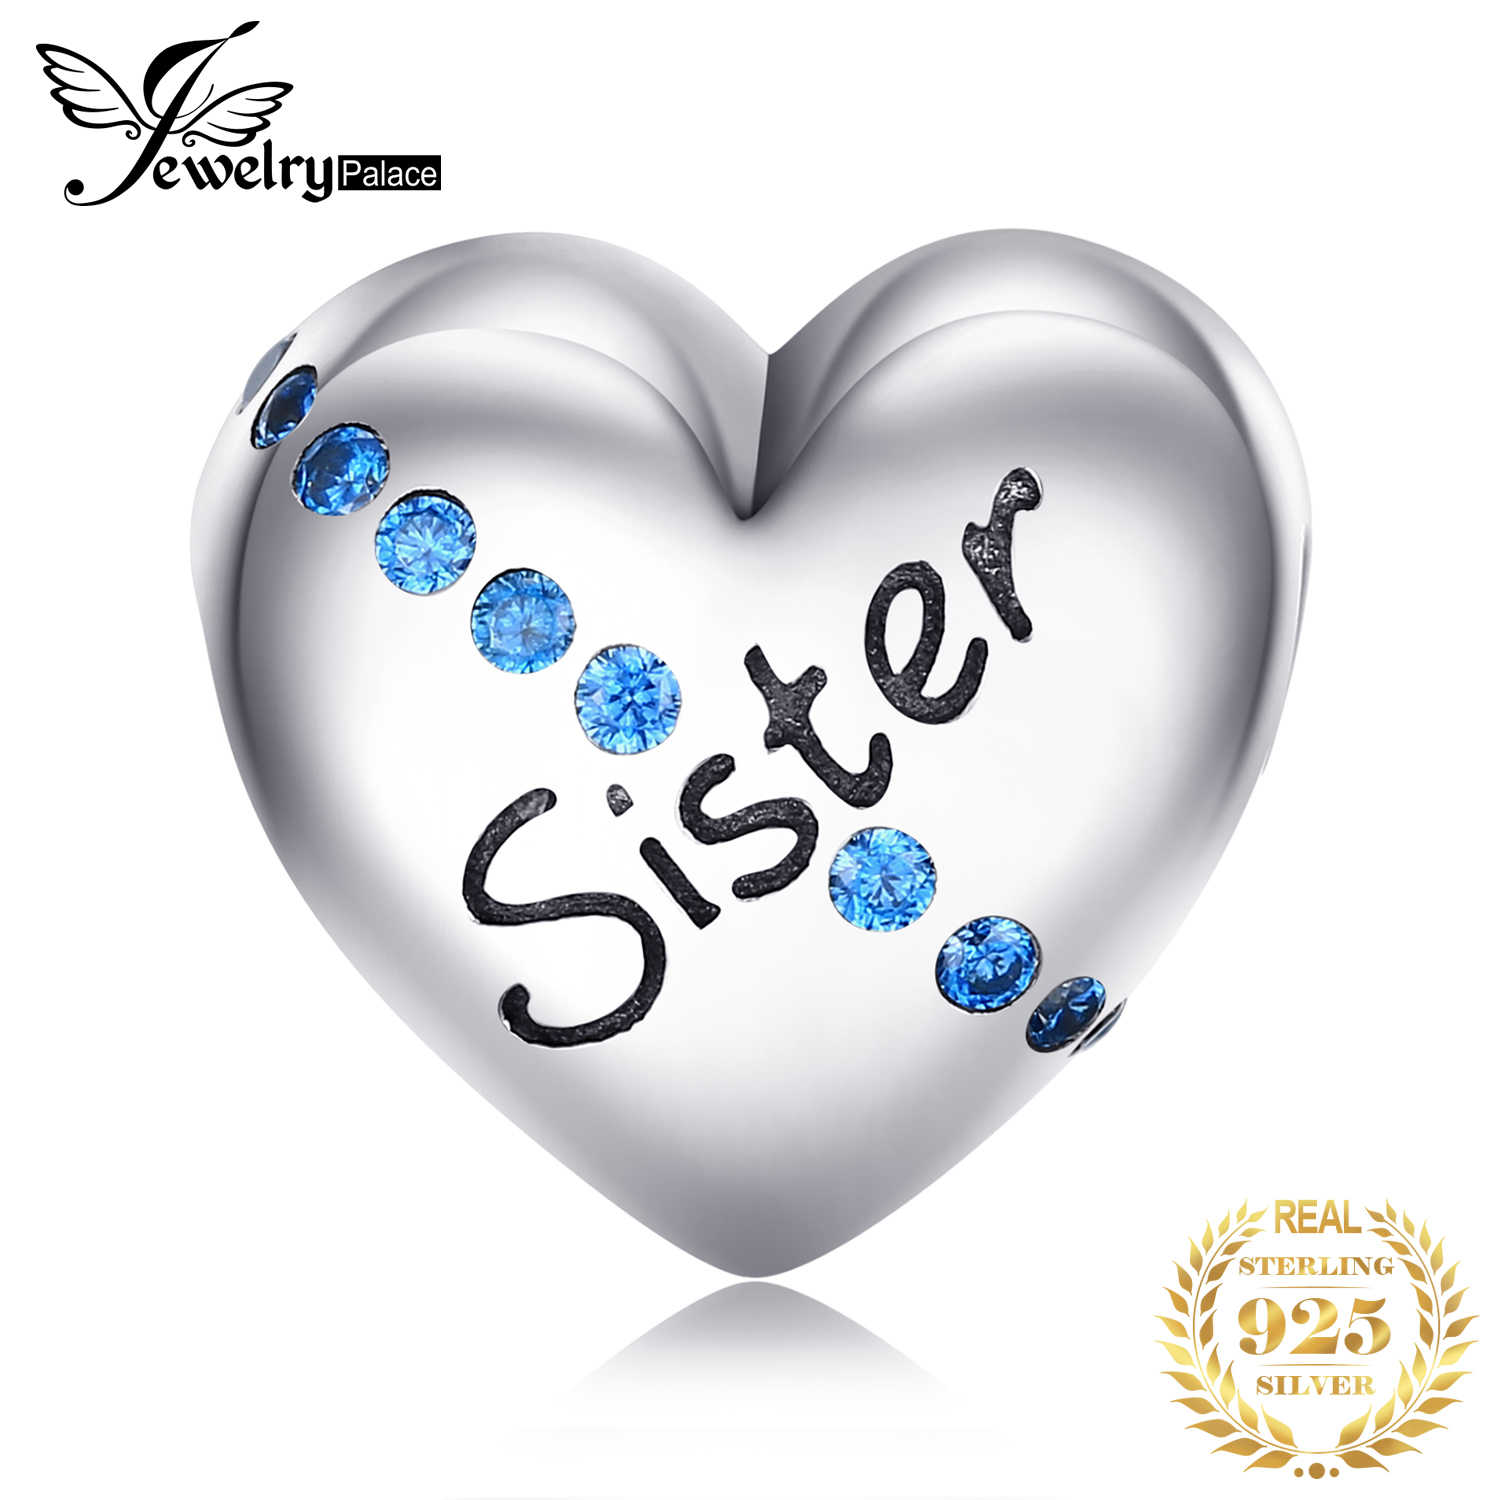 JewelryPalace 925 Sterling Silver Engraved Sister Blue Cubic Zirconia Heart Charm Beads Fit Bracelets For Your Sister As Gifts